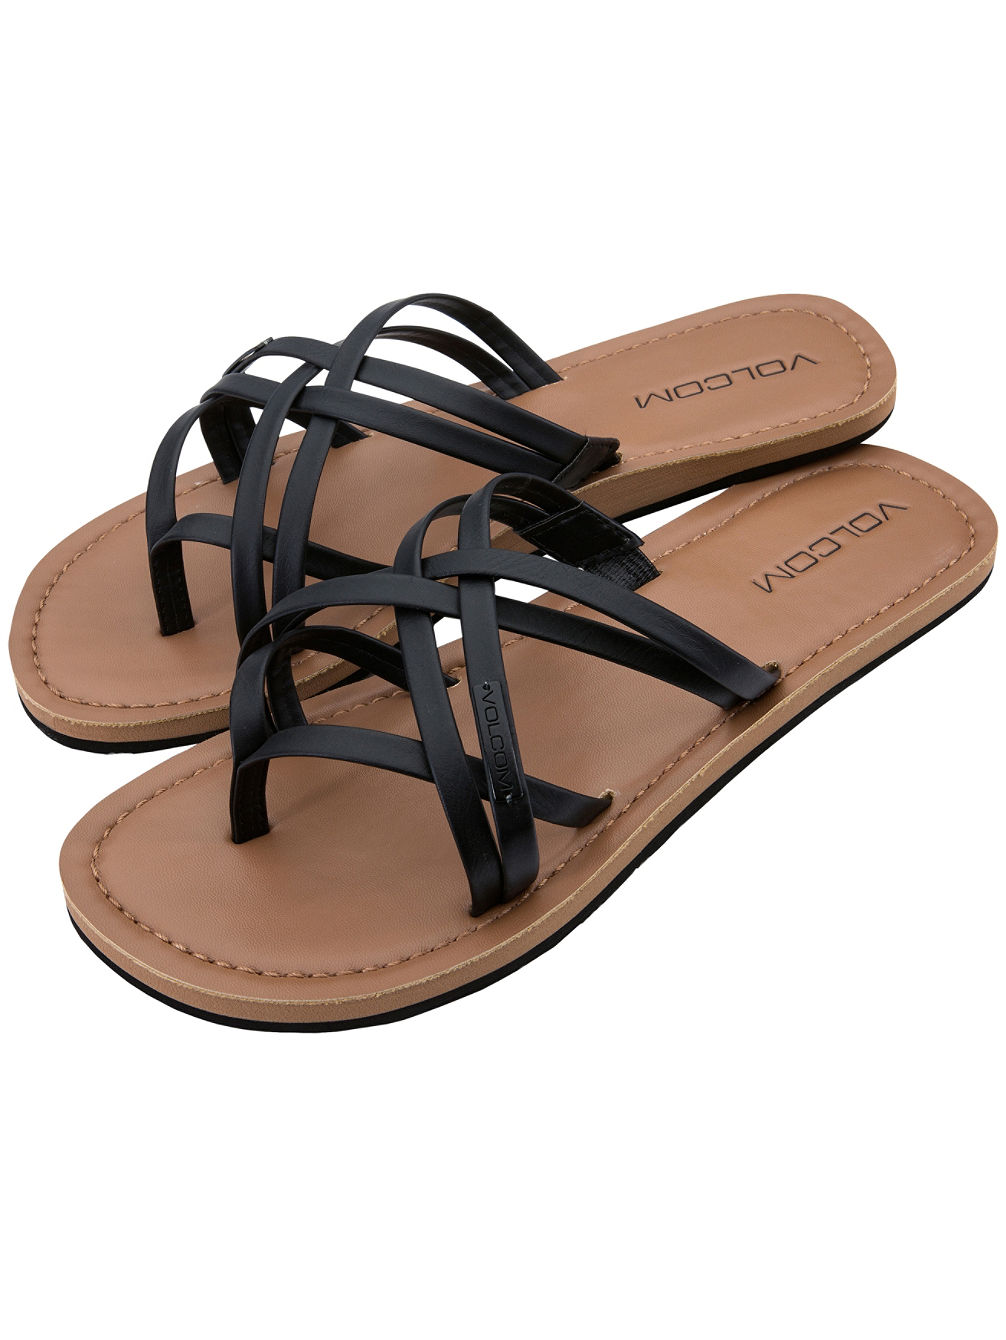 Strap Happy Sandalen Frauen